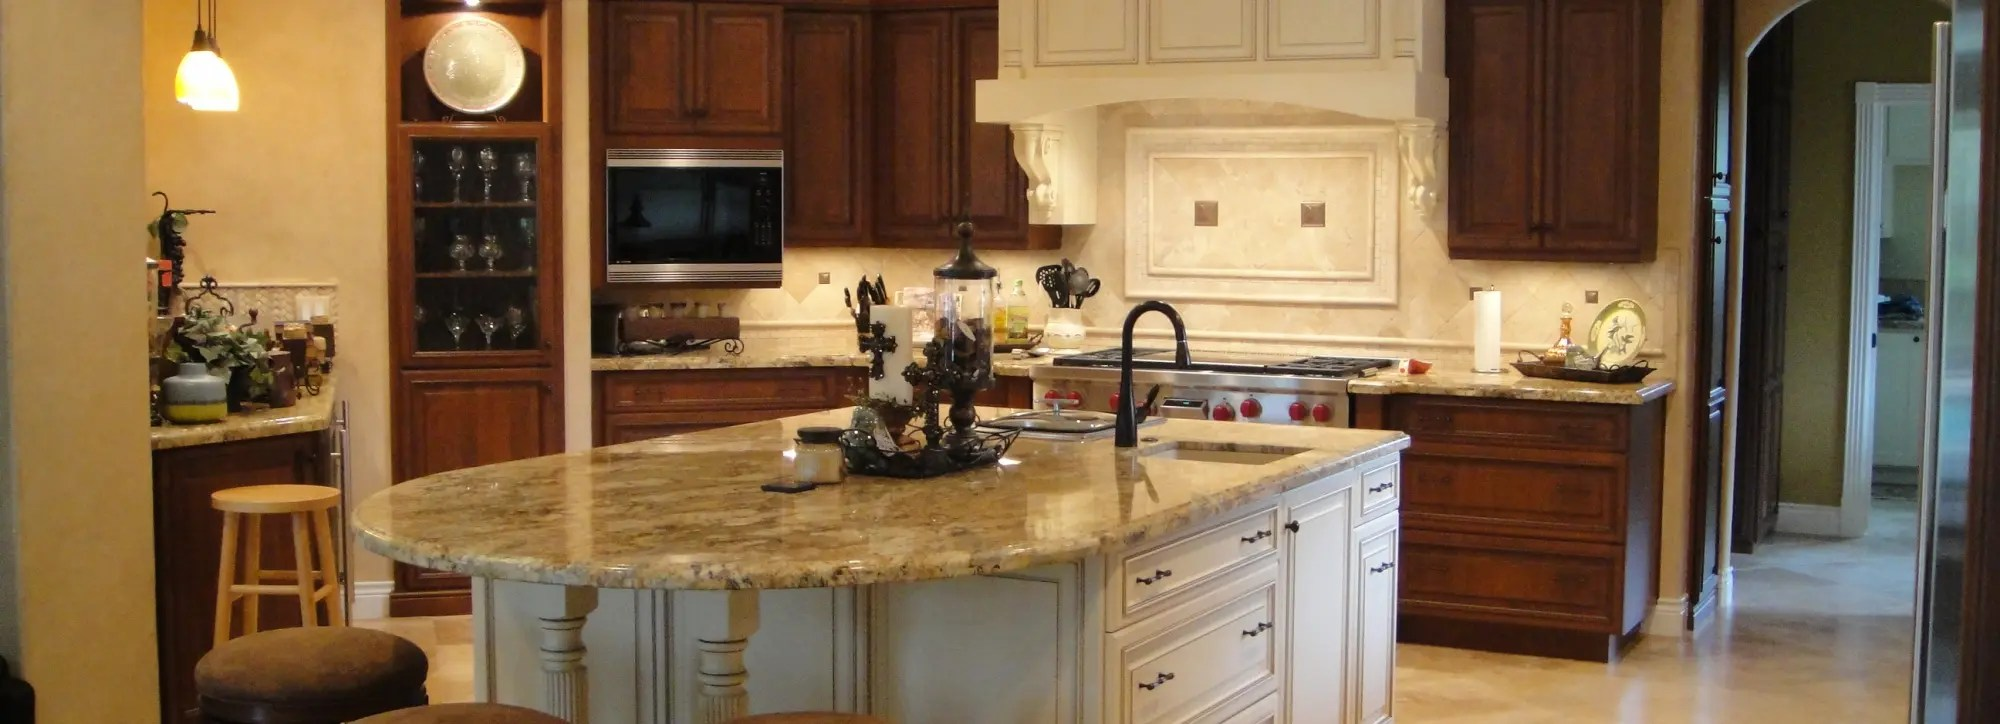 Used Kitchen Cabinets Red Deer Kitchen Remodeling Design Company In Houston Tx Bay Area Kitchens